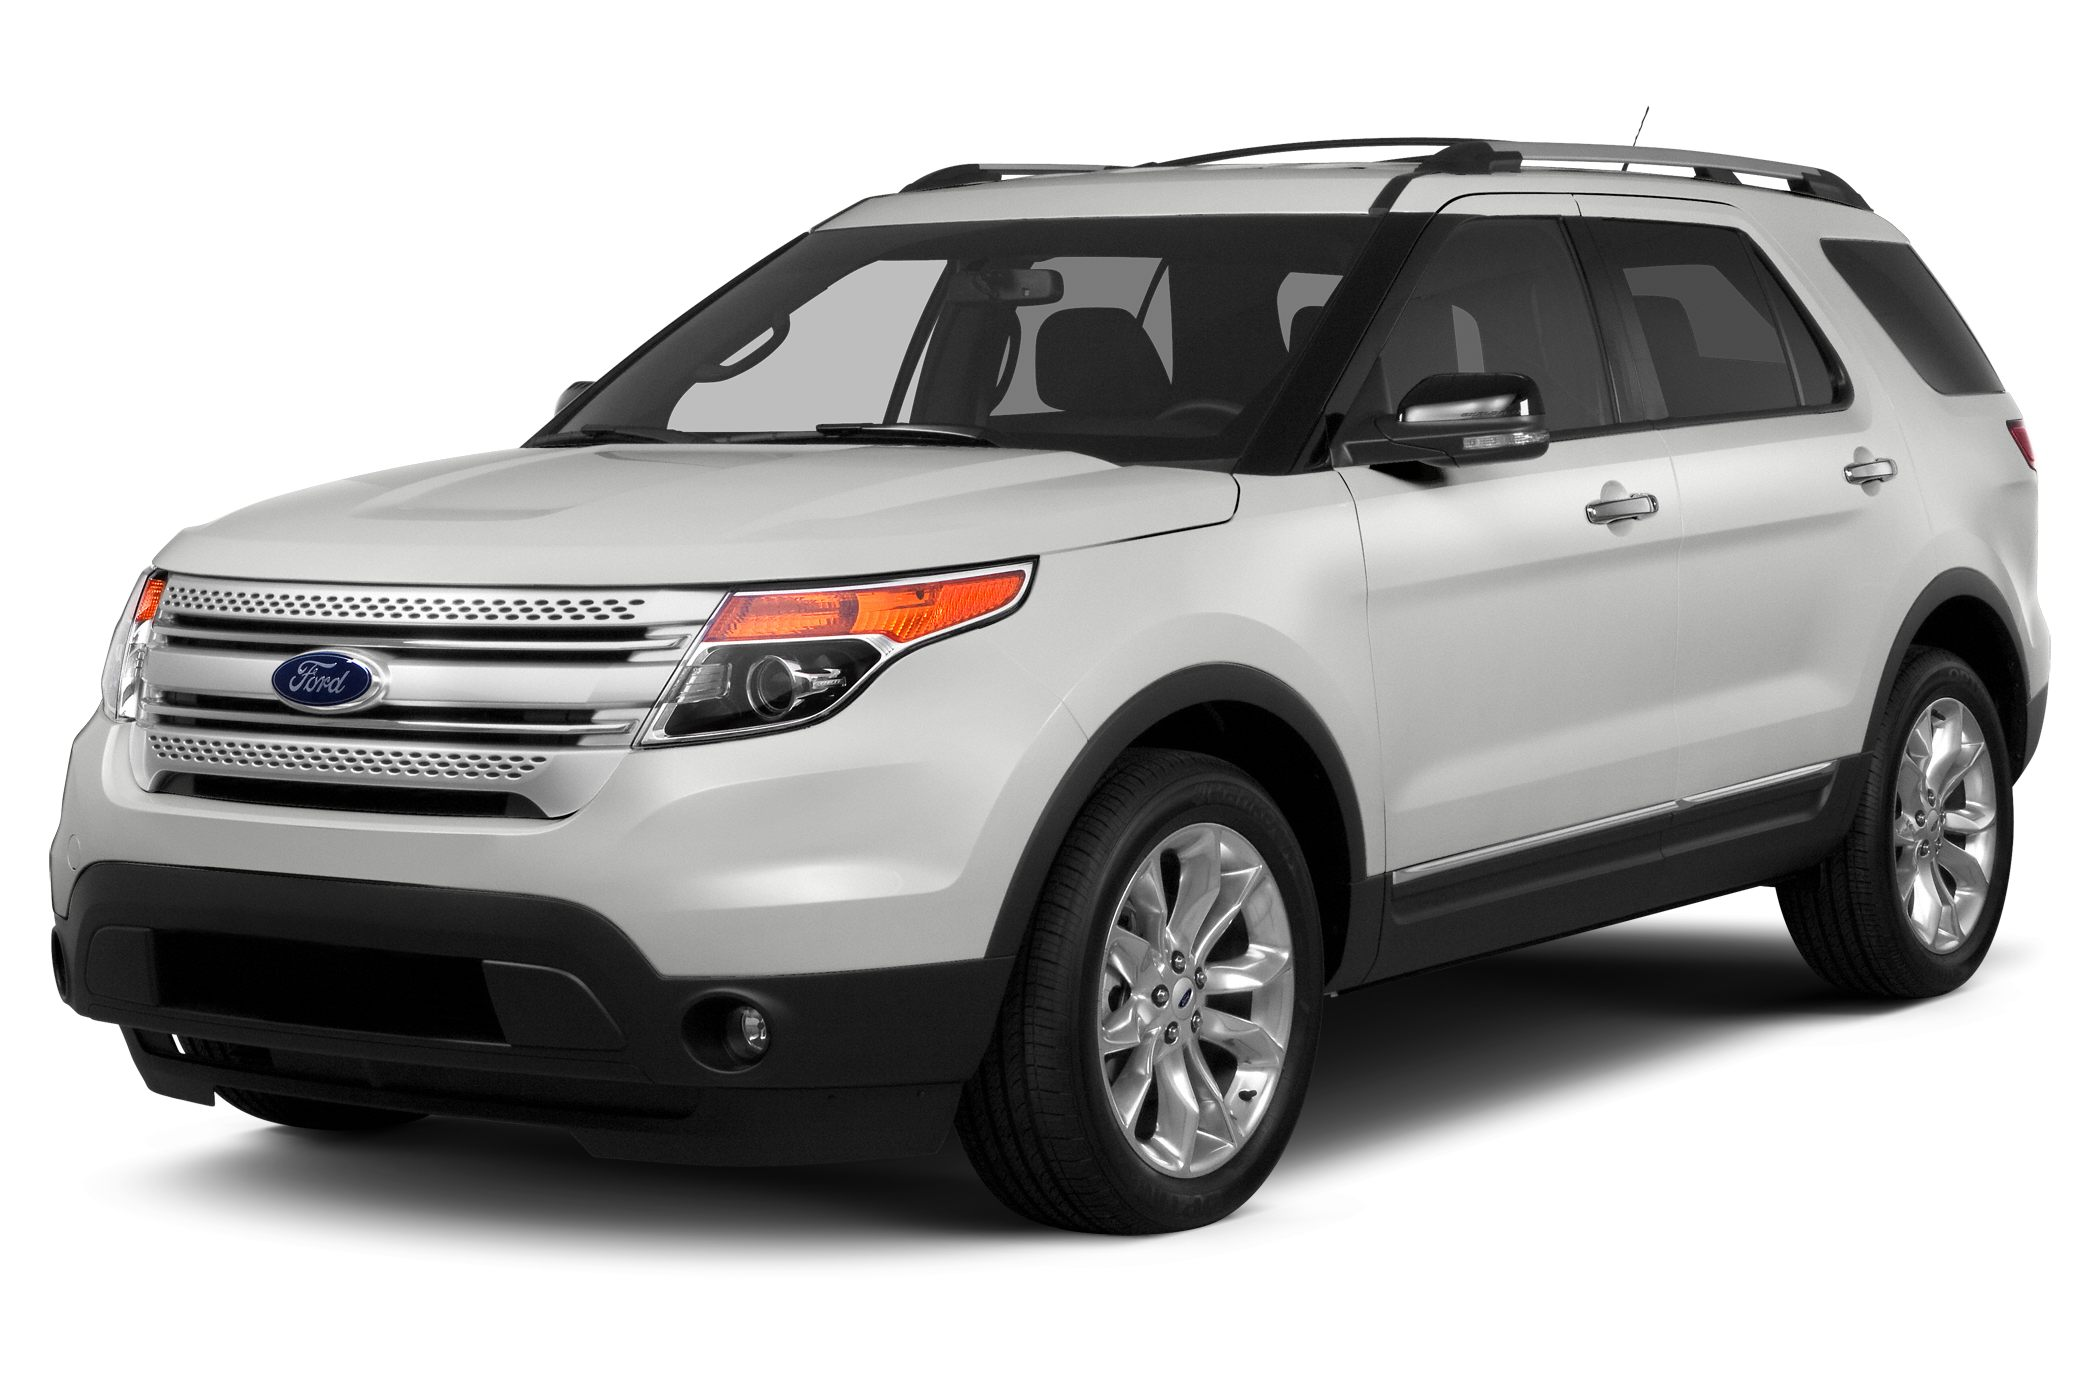 2015 Ford Explorer XLT SUV for sale in Appleton for $36,540 with 1 miles